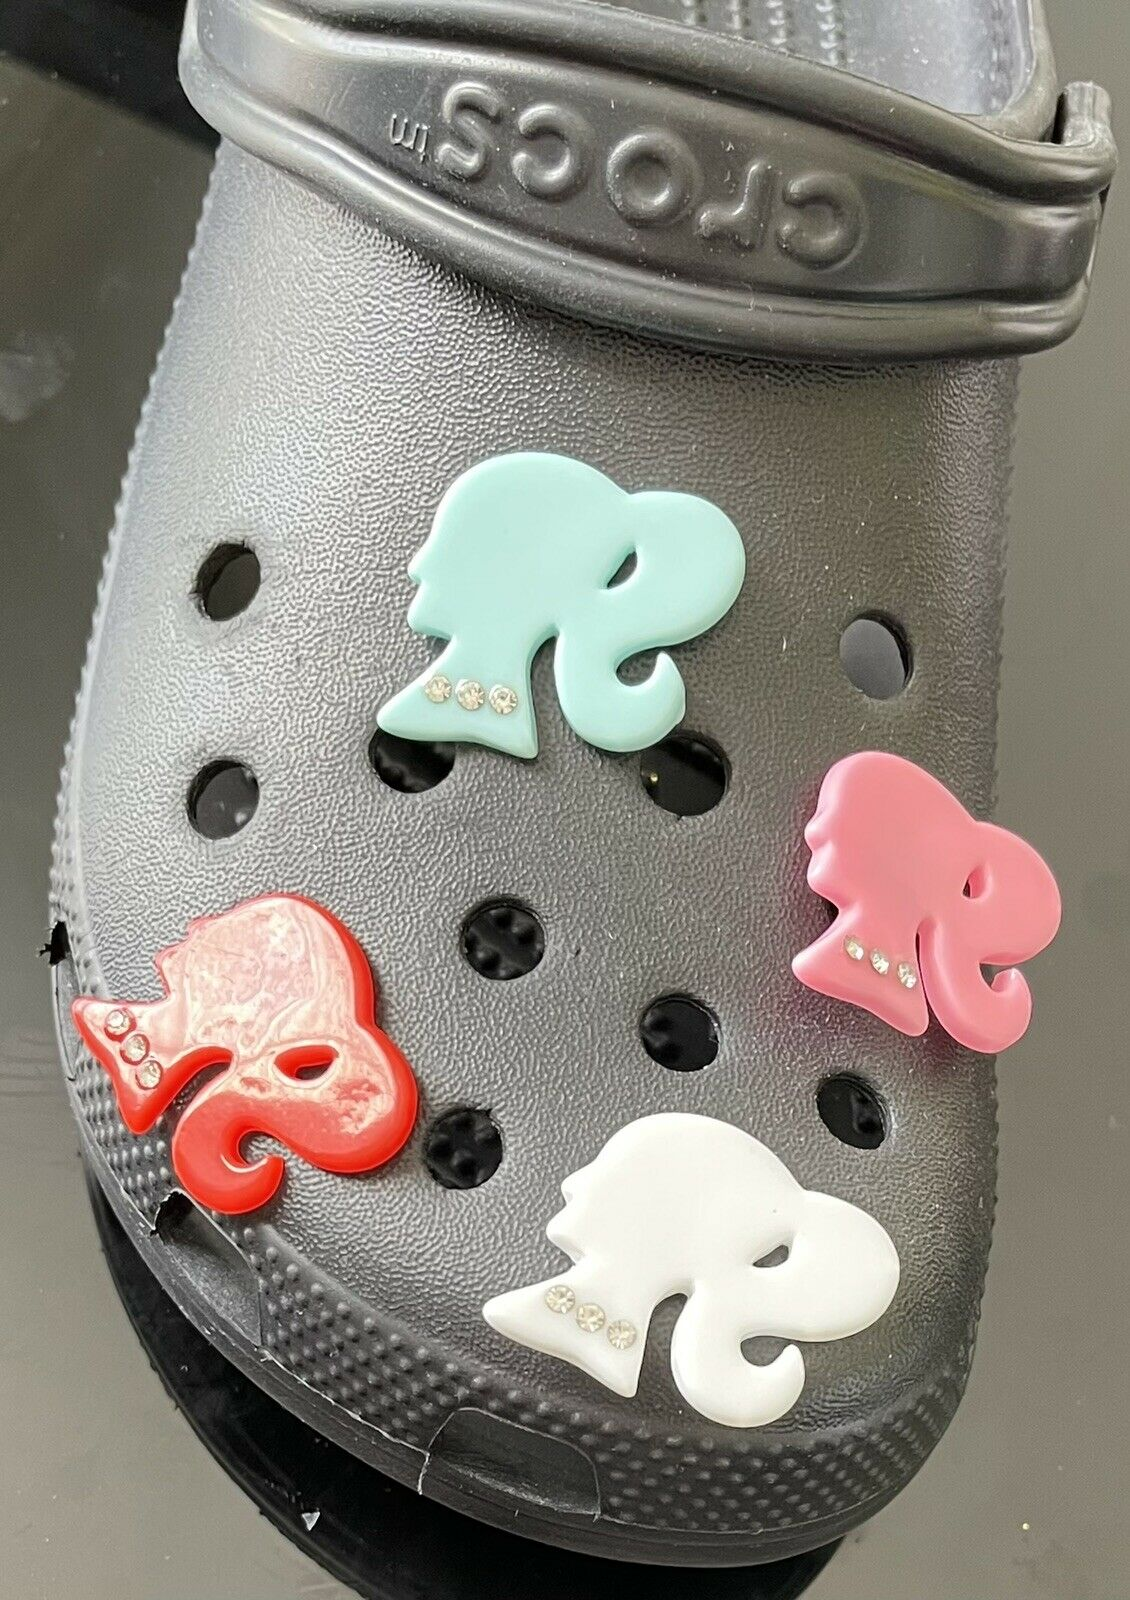 1 crocs inspired charms - Barbie/girl Pick 1 Color